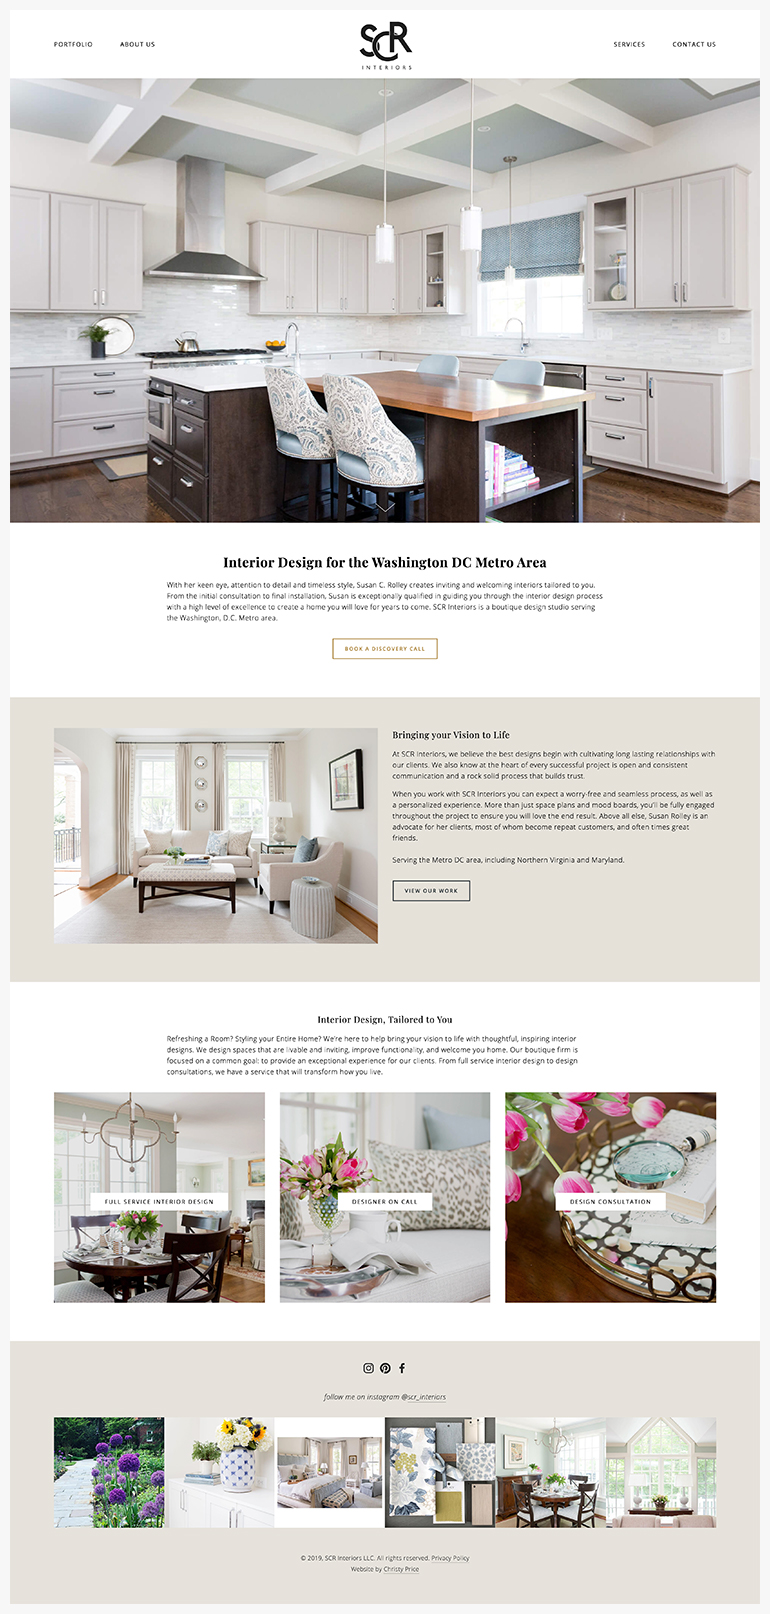 Scr Interiors Squarespace Web Design By Christy Price Austin Texas